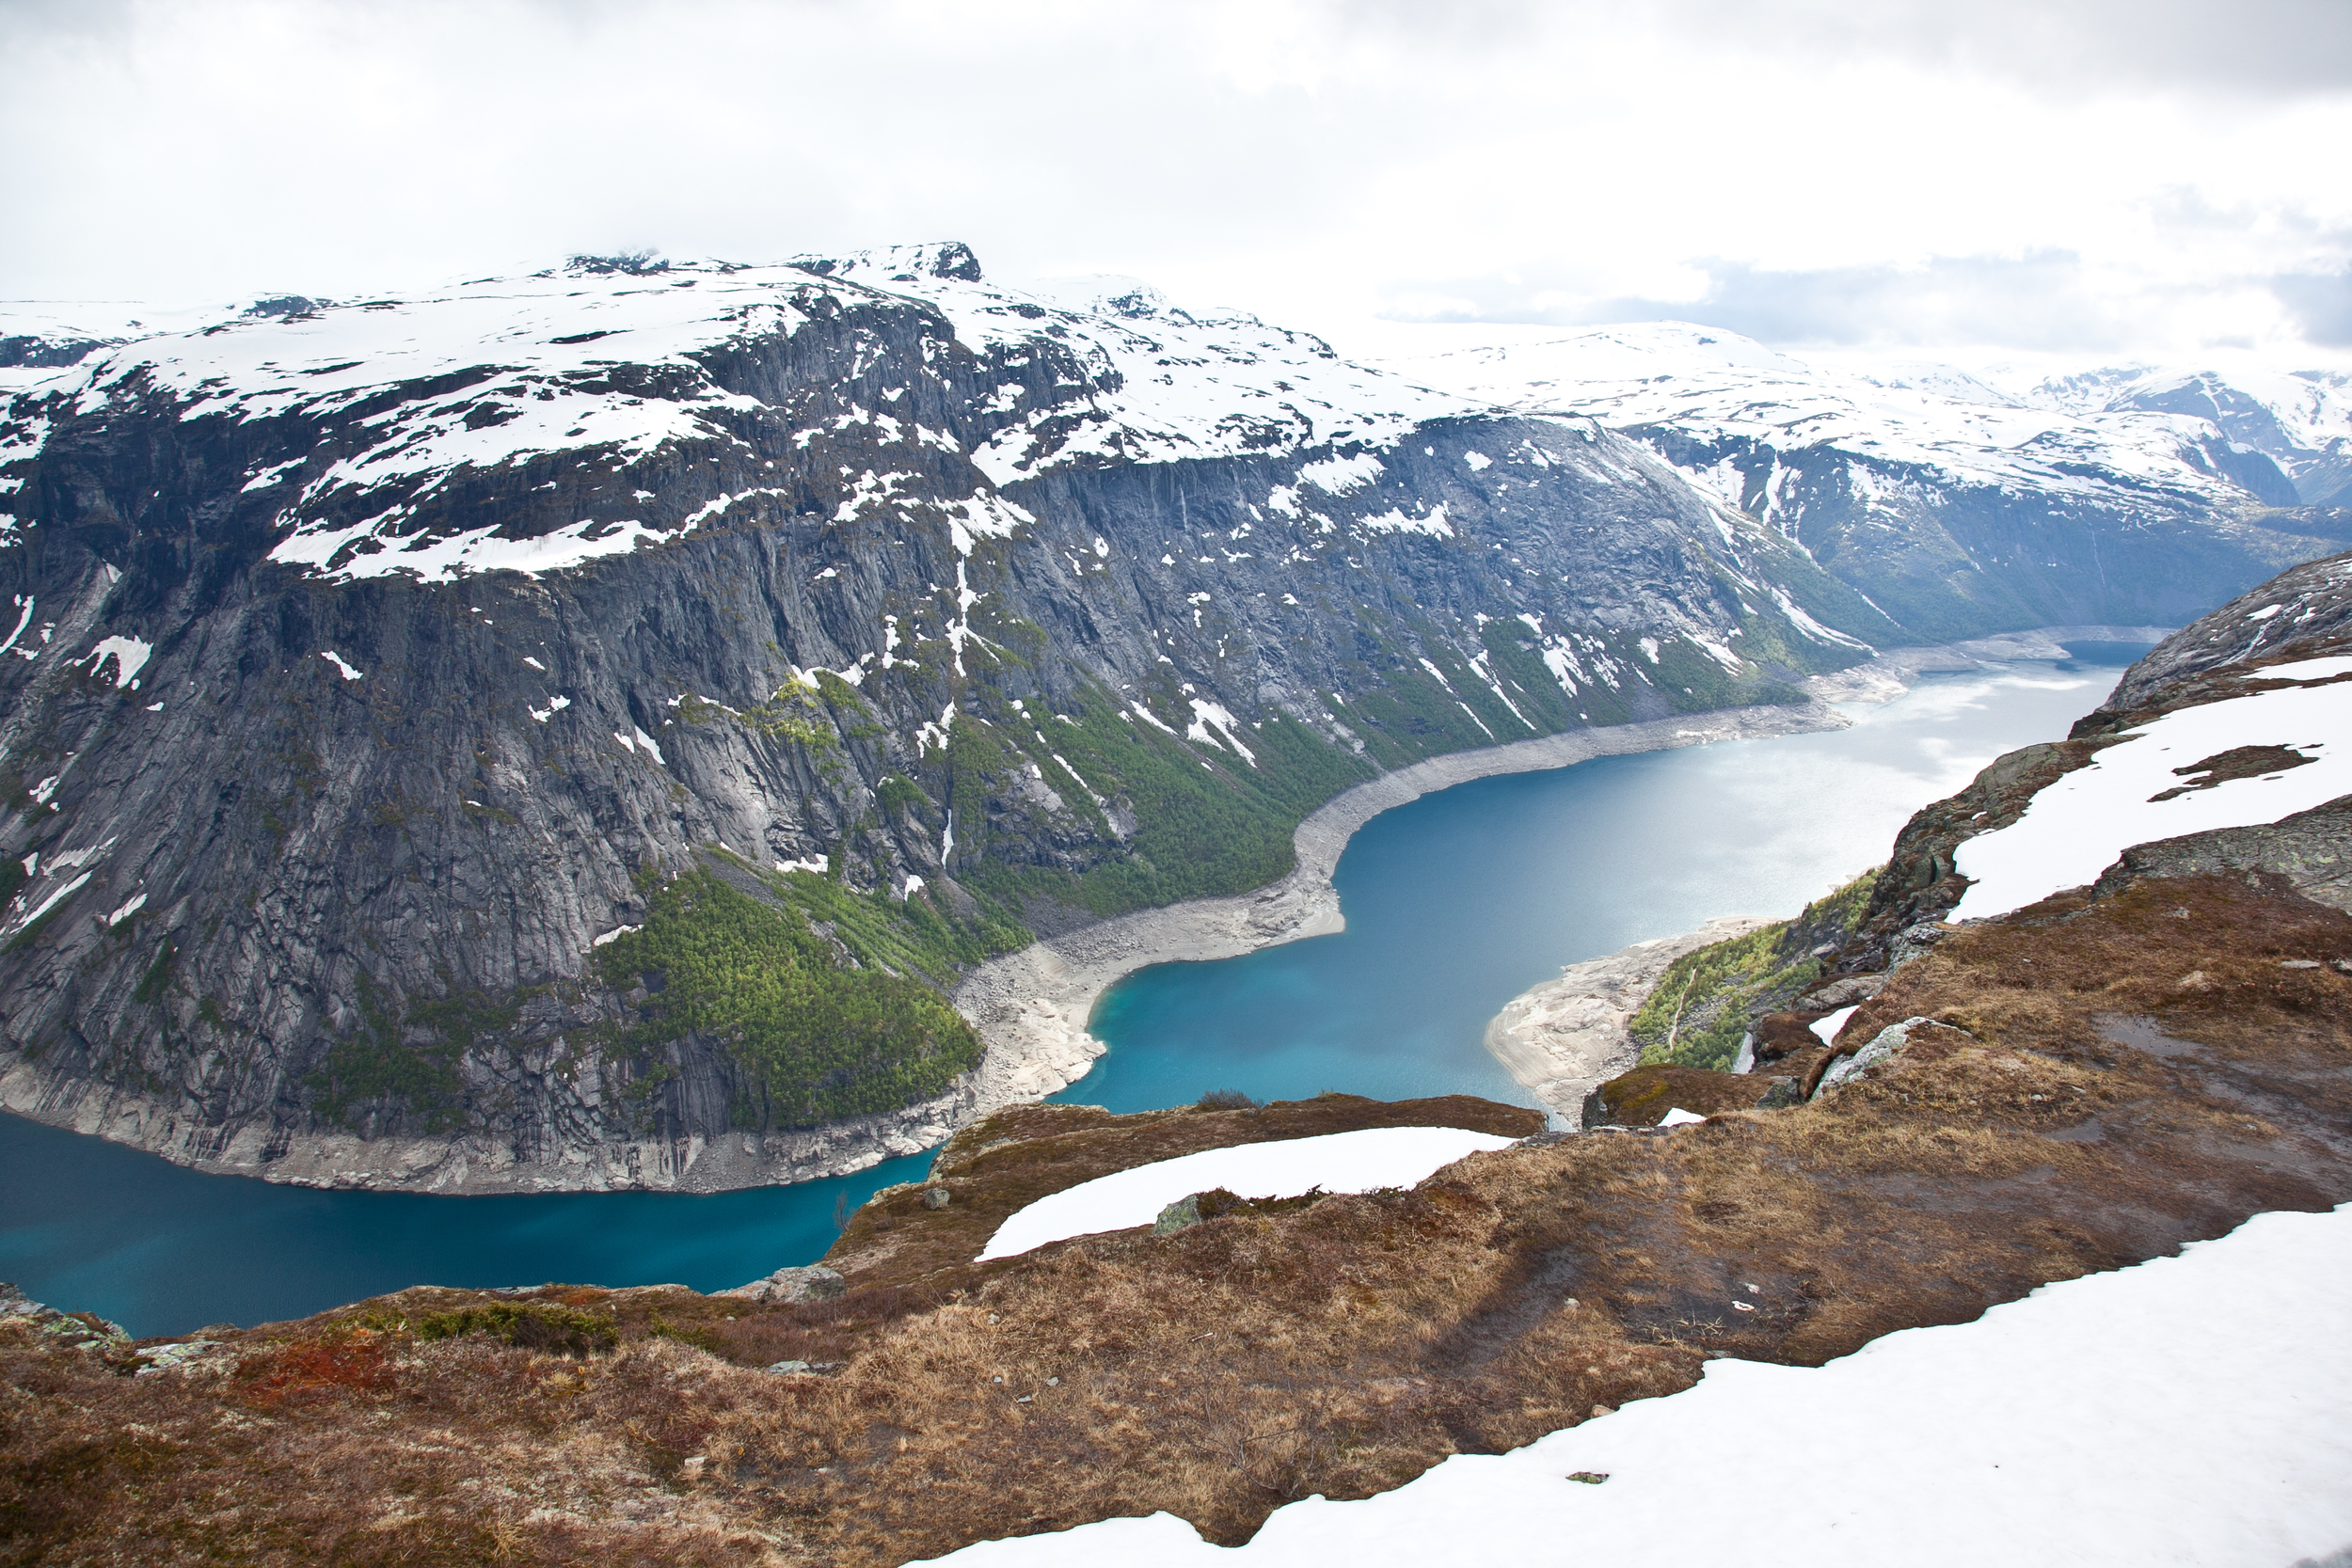 IMG_3830-trolltunga-norway-hiking-trisa-taro.jpg